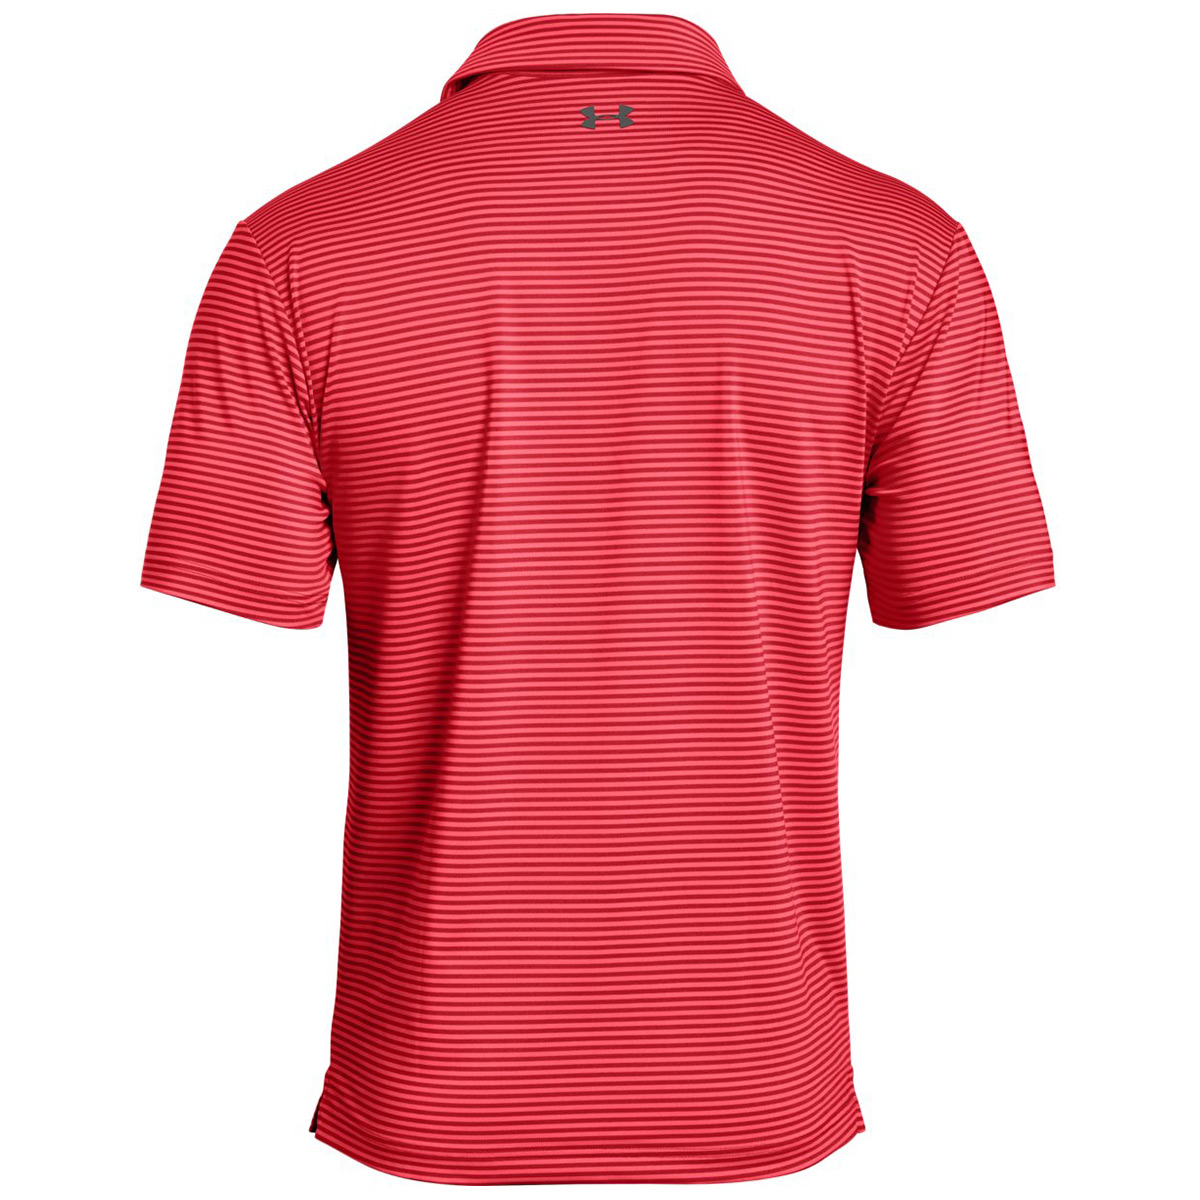 Under-Armour-Mens-UA-Playoff-Performance-Golf-Polo-Shirt-42-OFF-RRP thumbnail 40